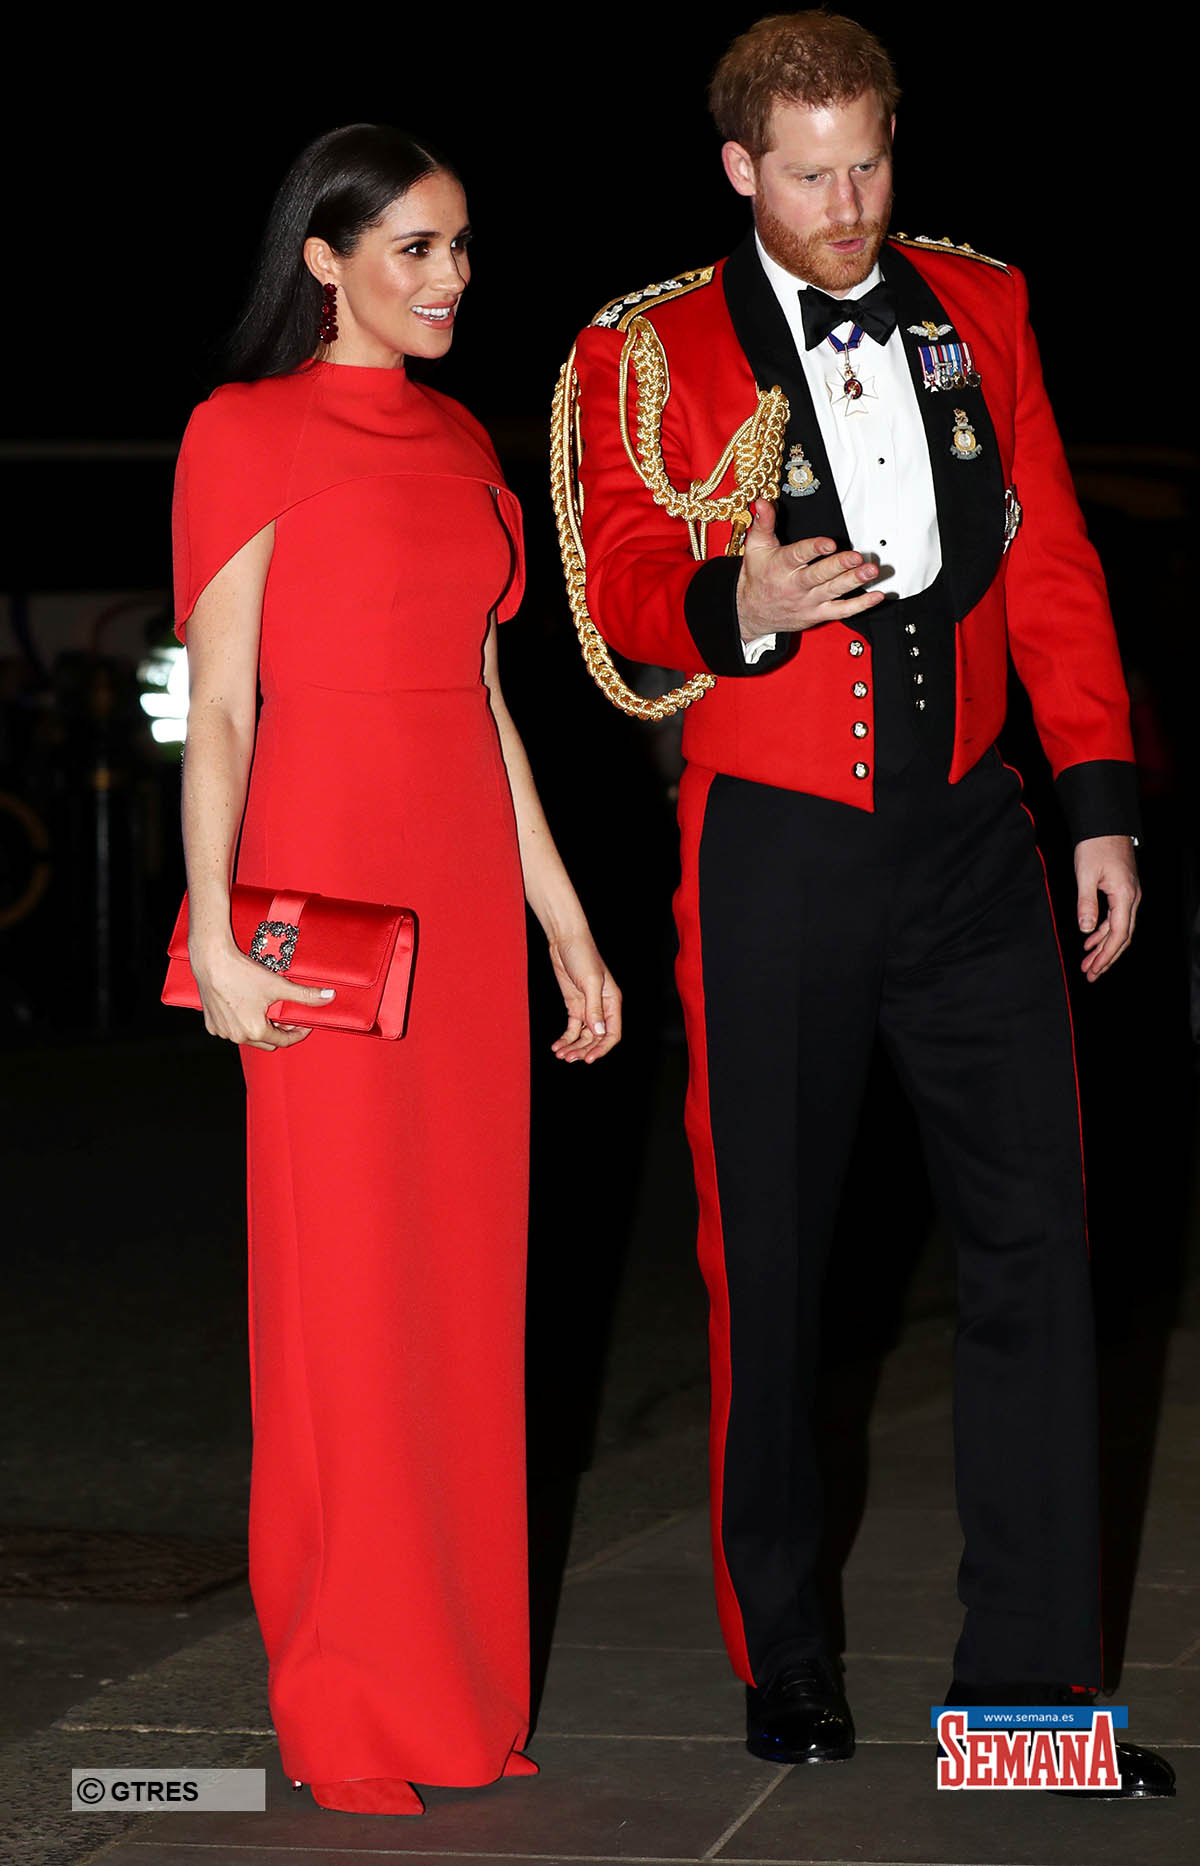 Britain's Prince Harry and his wife Meghan, arrive to attend the Mountbatten Festival of Music at the Royal Albert Hall in London, Britain March 7, 2020. REUTERS/Simon Dawson/Pool *** Local Caption *** .